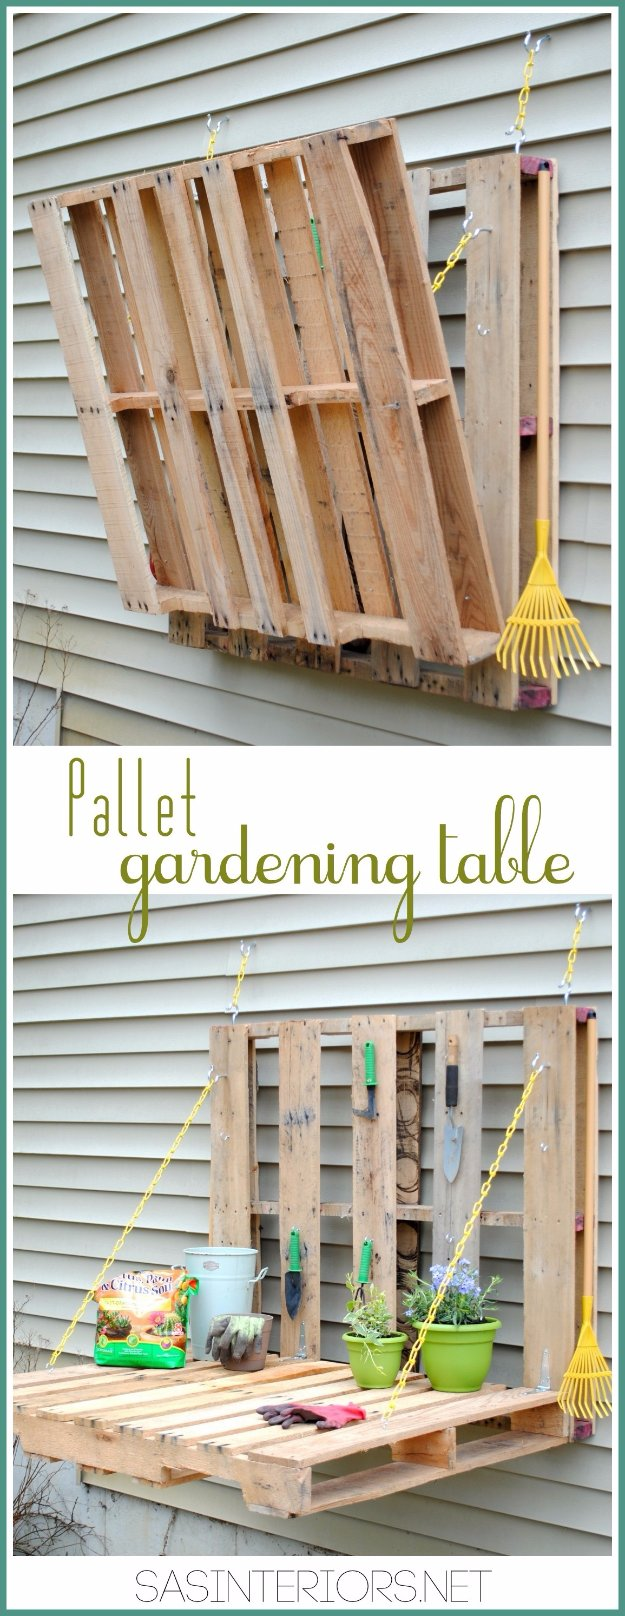 DIY Pallet Furniture Ideas - DIY Pallet Gardening Table - Best Do It Yourself Projects Made With Wooden Pallets - Indoor and Outdoor, Bedroom, Living Room, Patio. Coffee Table, Couch, Dining Tables, Shelves, Racks and Benches